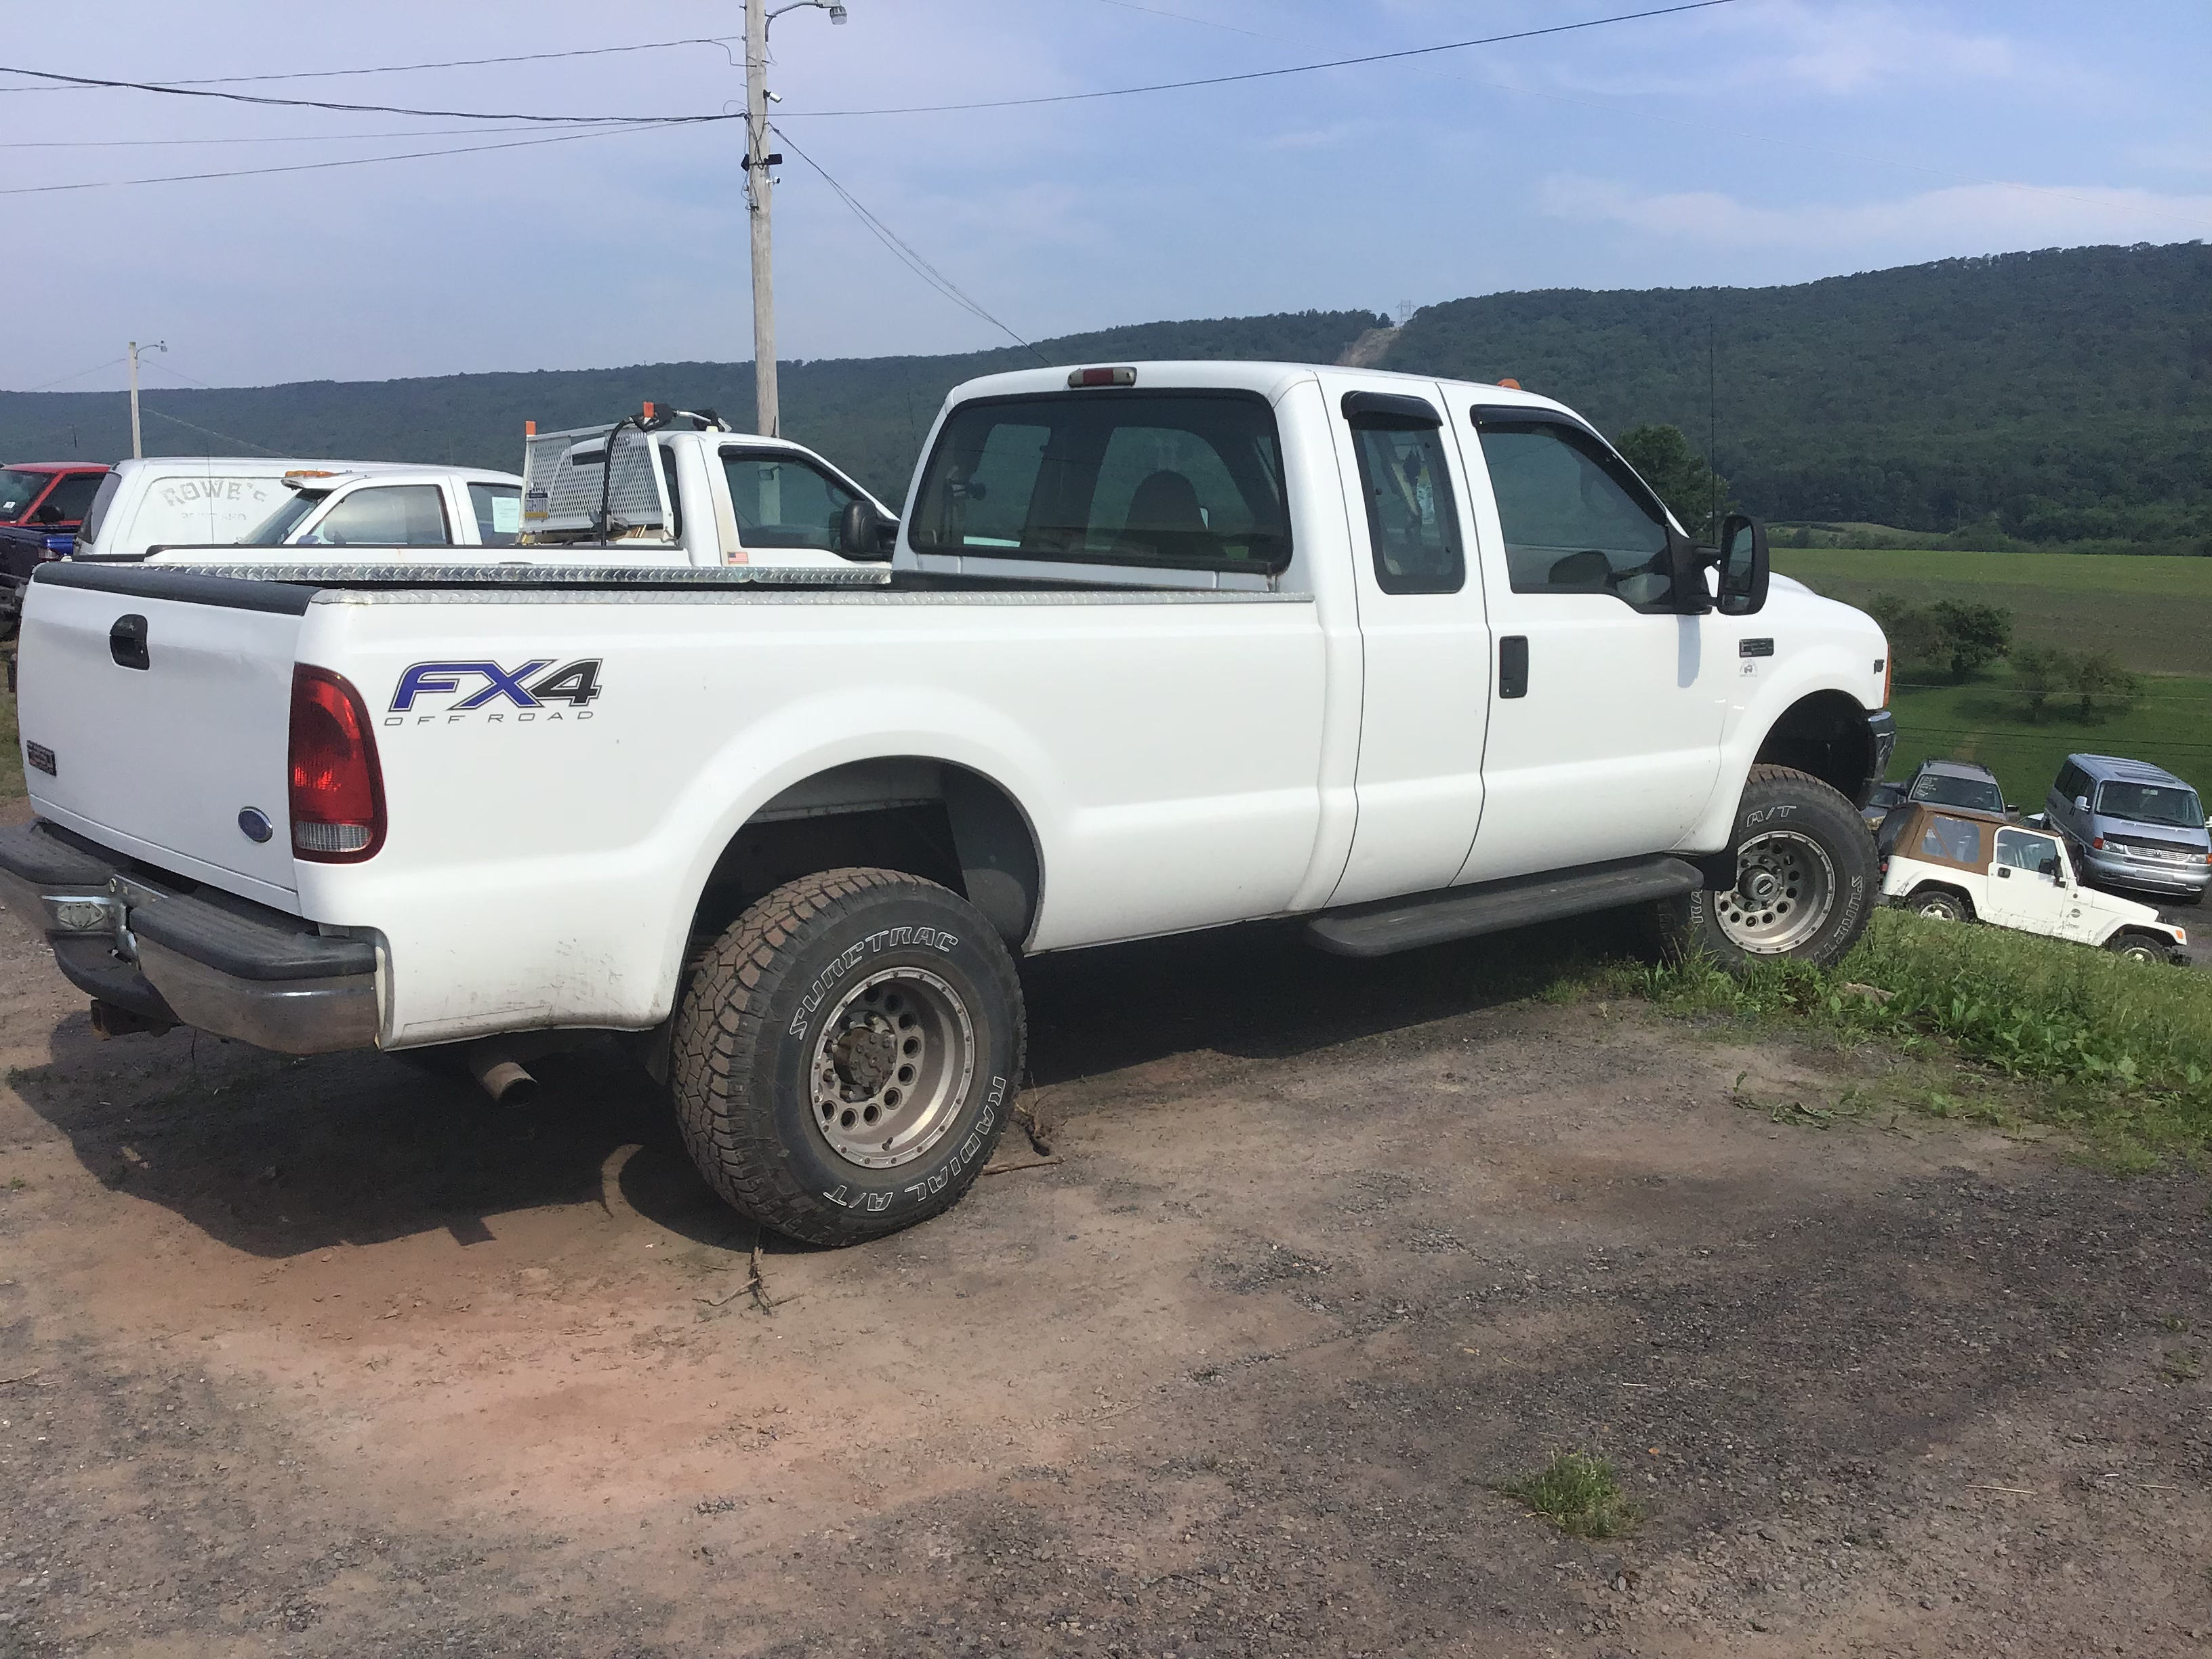 1999 ford f 250 super duty v153 troys auto sales inc 1999 ford f 250 super duty v153 vehicle specification publicscrutiny Image collections